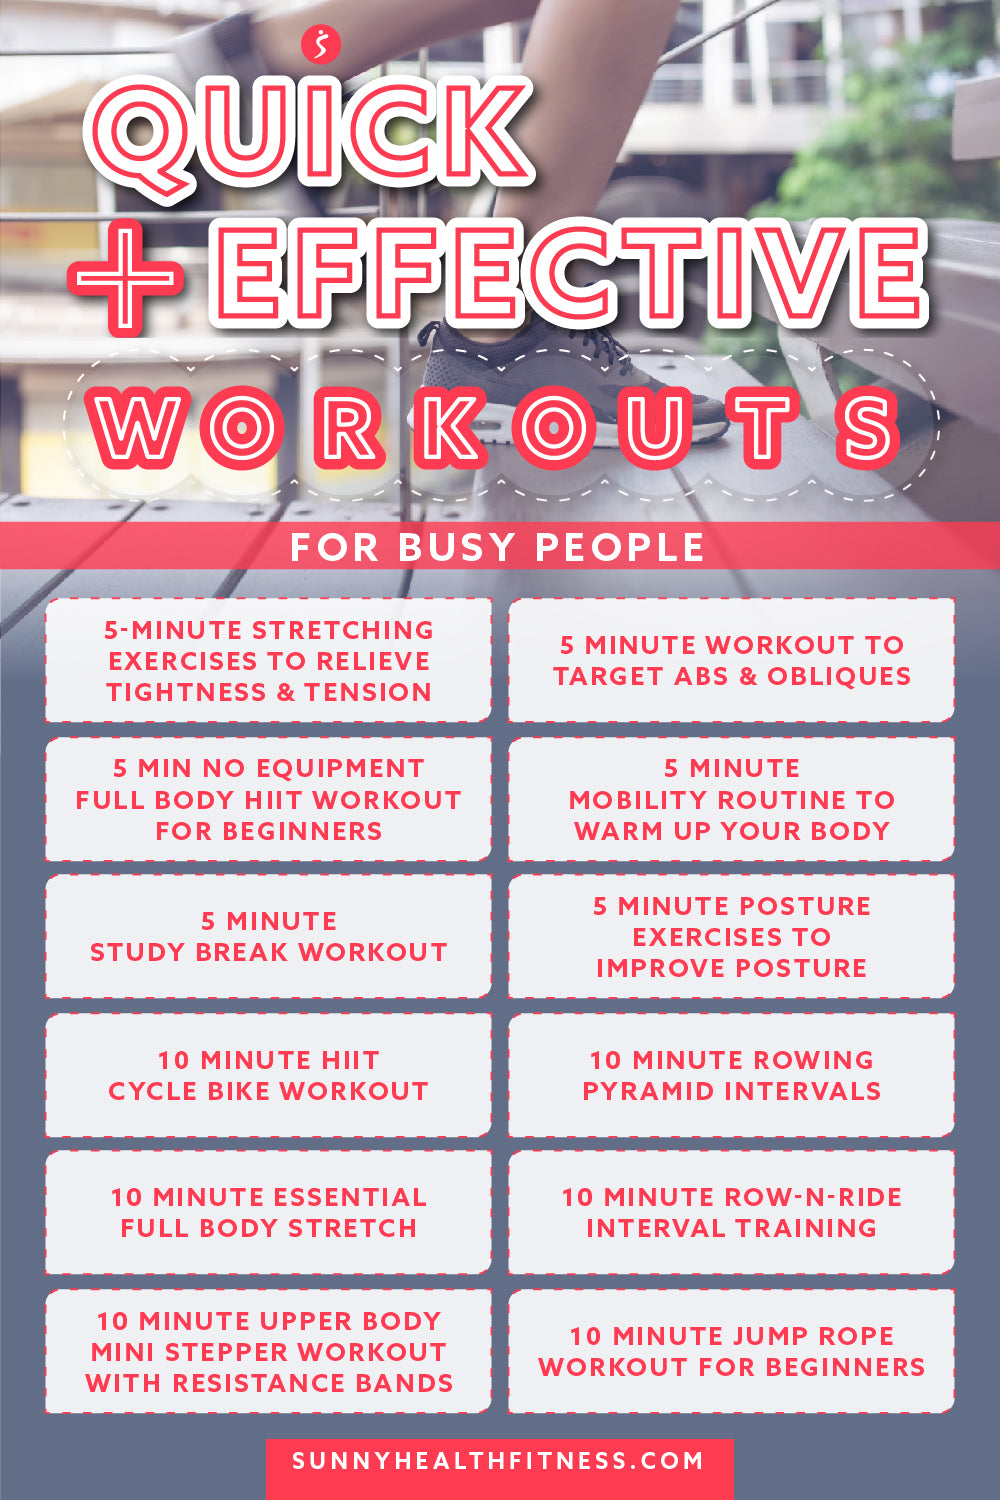 12 Quick & Effective Workouts for Busy People Infographic